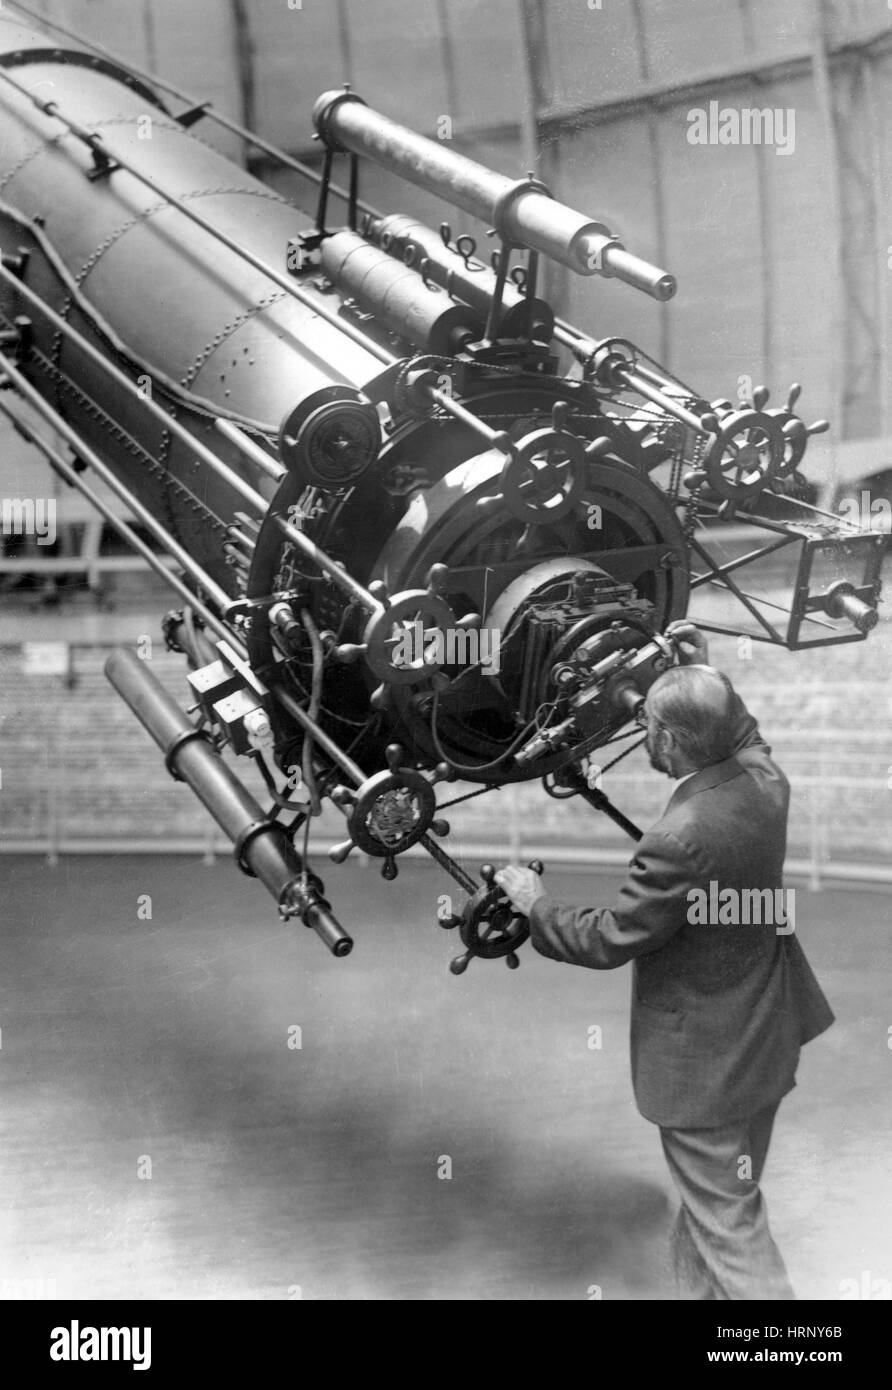 George A. Van Biesbroeck, Astronomer - Stock Image